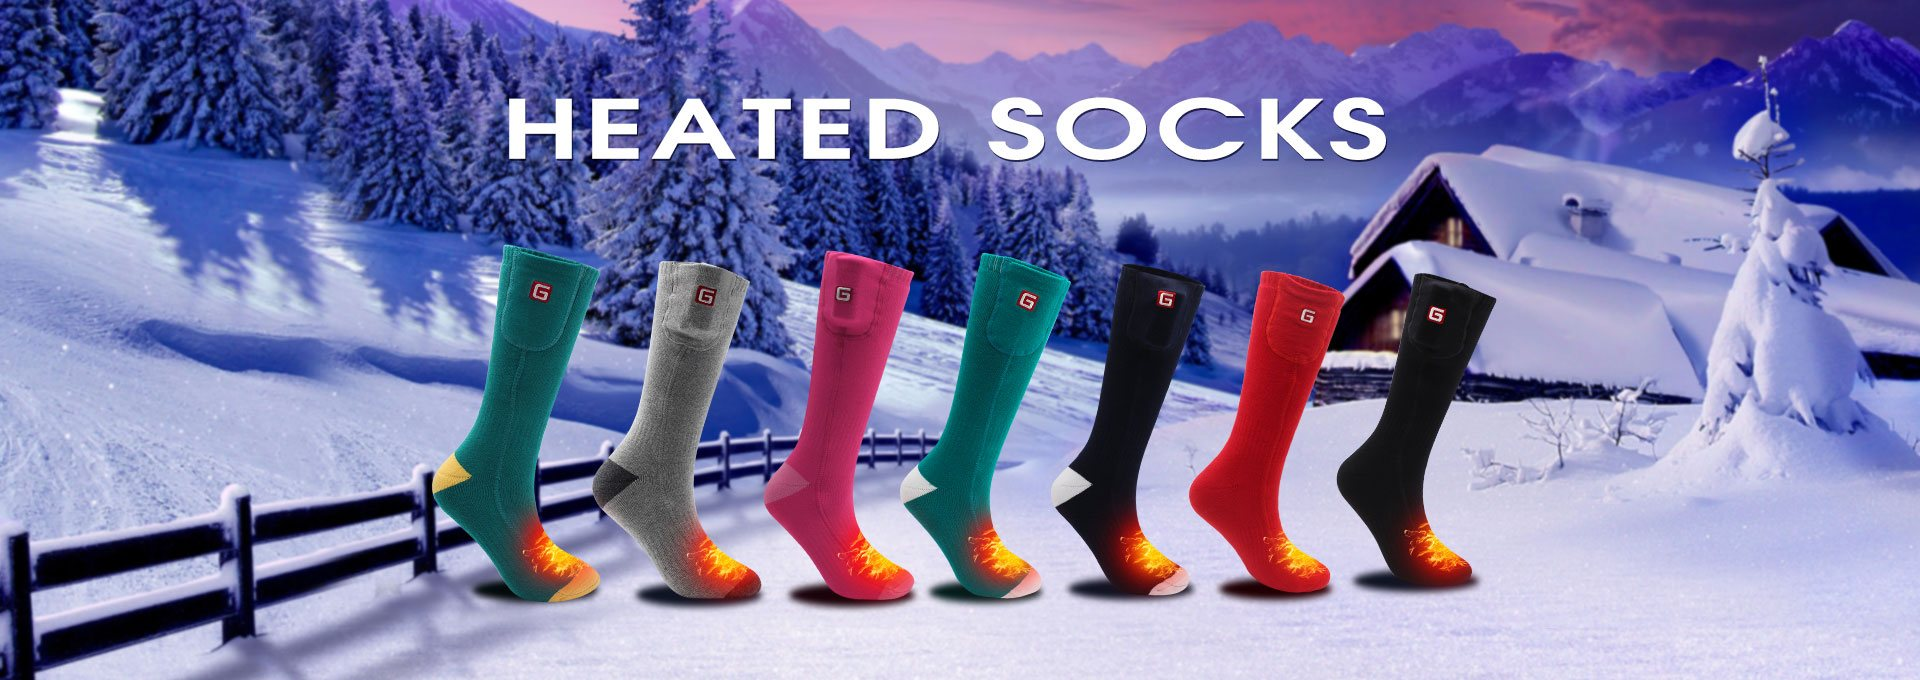 ELECTRIC RECHARGEABLE BATTERY HEATED SOCKS WARM WINTR COLD WEATHER FOOT WARMER